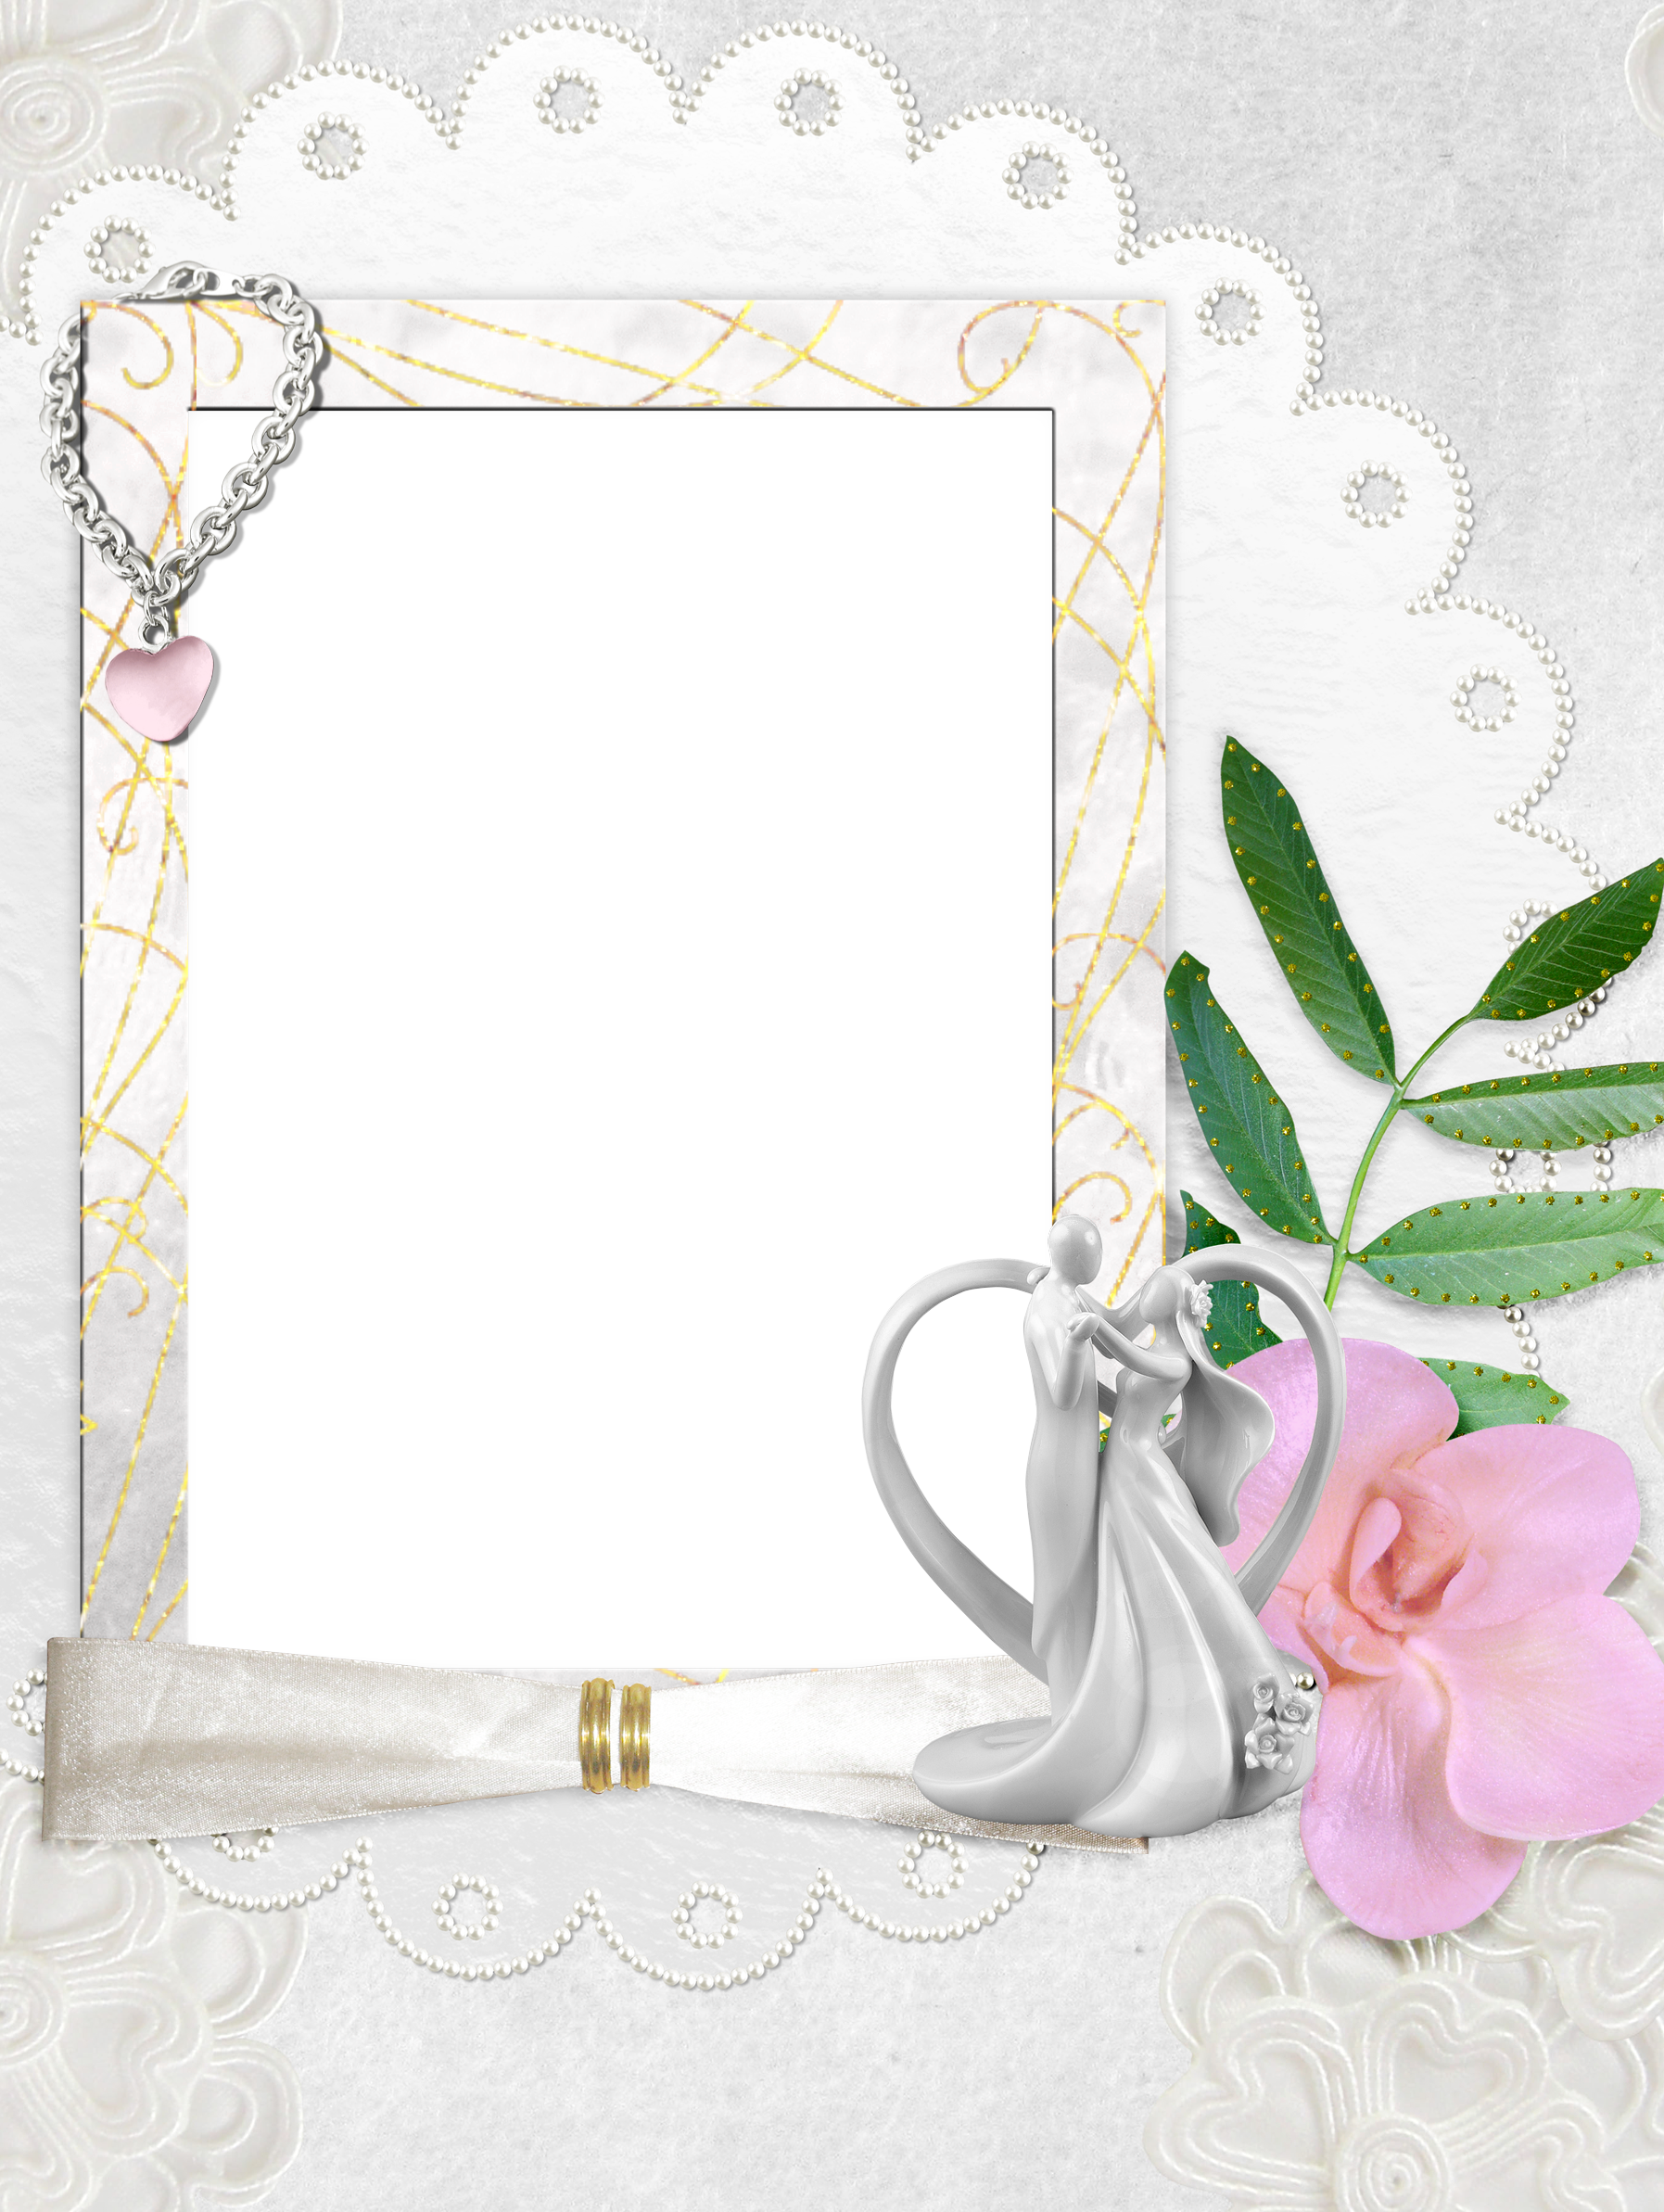 White Transparent Wedding Frame | Marcos✨ | Pinterest